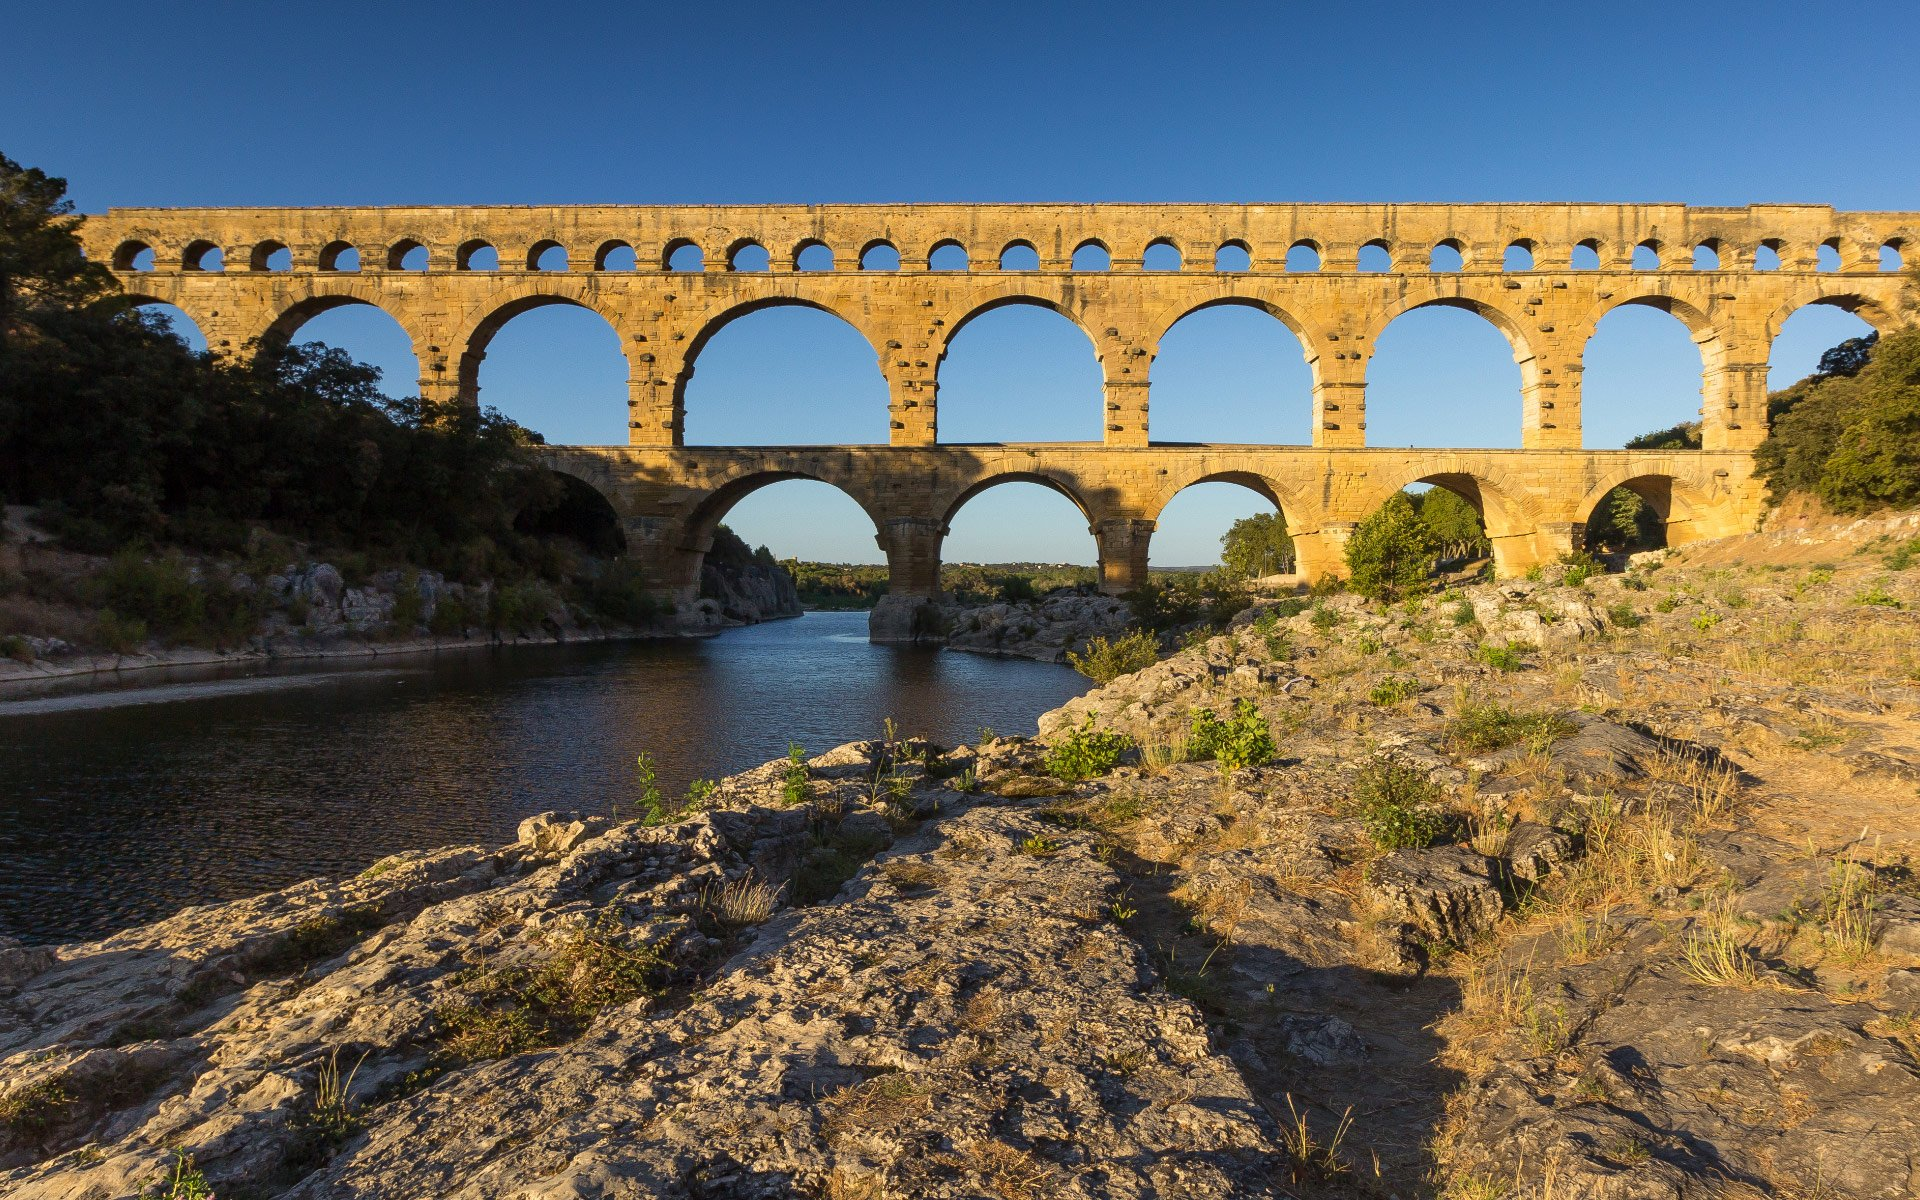 Pont Du Gard Aqueduct over Gardon River in France HD Wallpapers